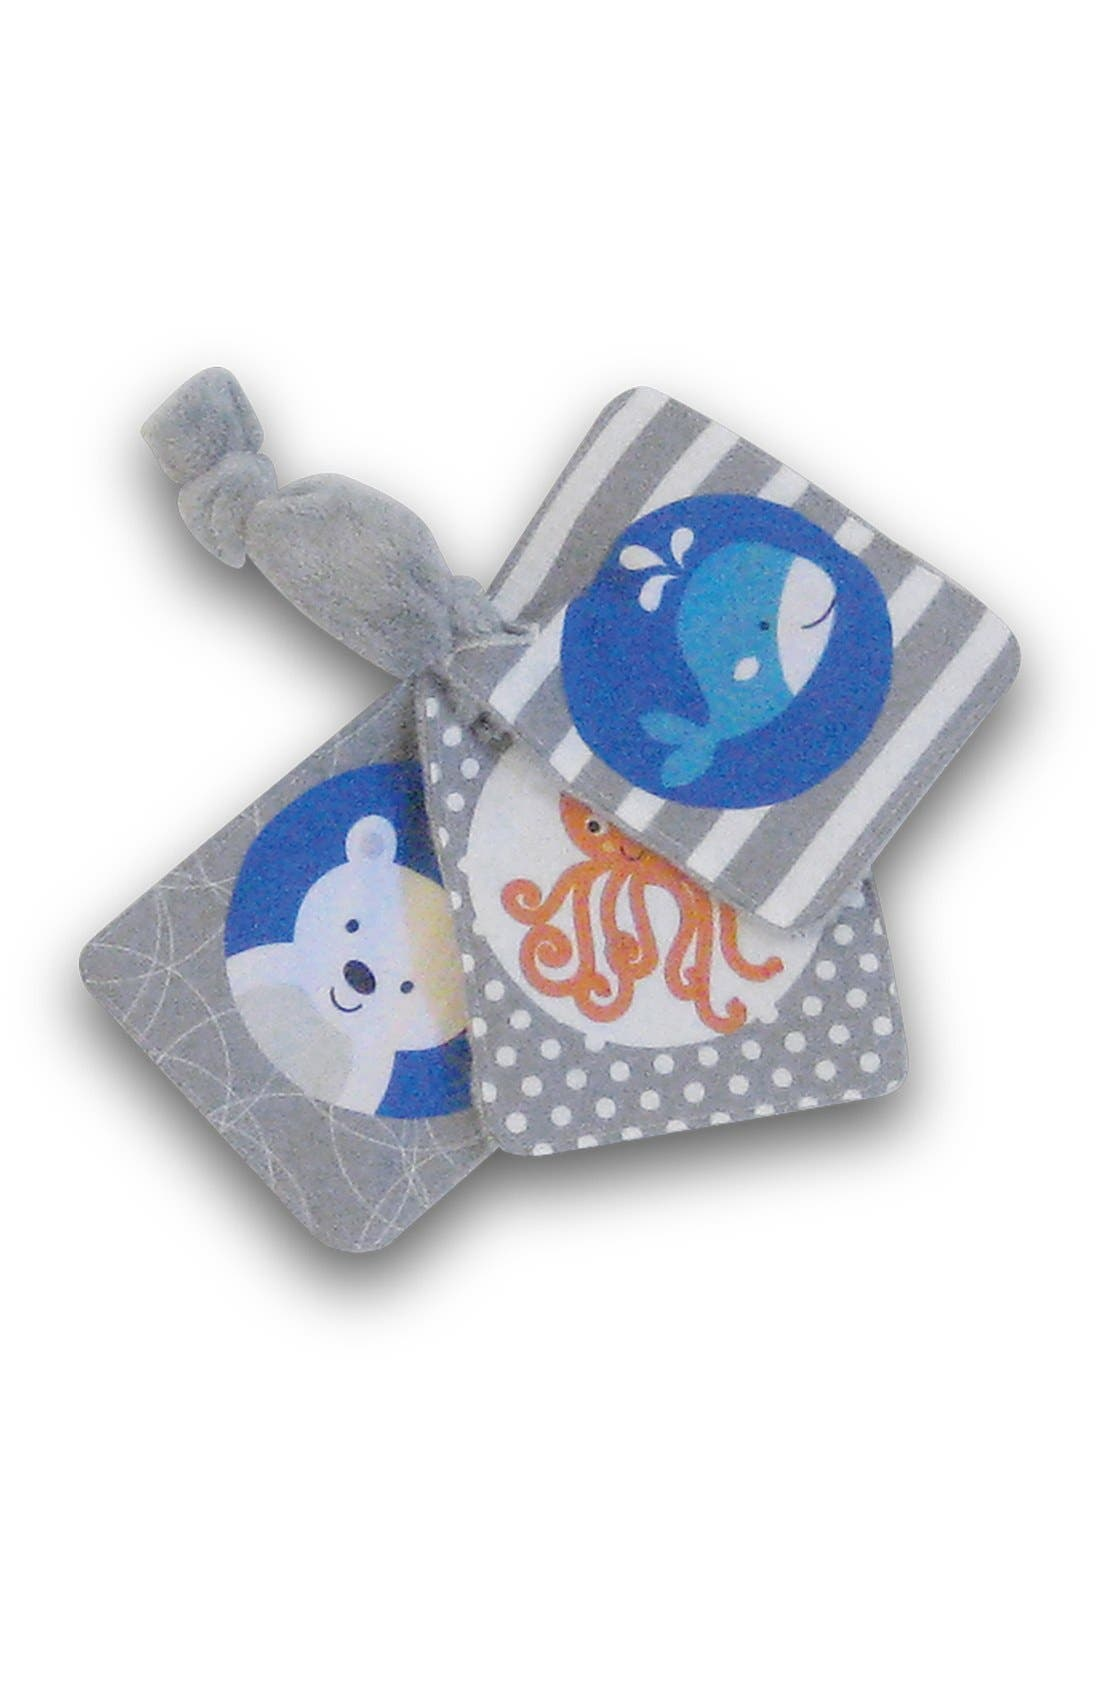 BOPPY, Tummy Time - SlideLine Collection Mini Pillow, Book & Teething Ring, Alternate thumbnail 2, color, 020